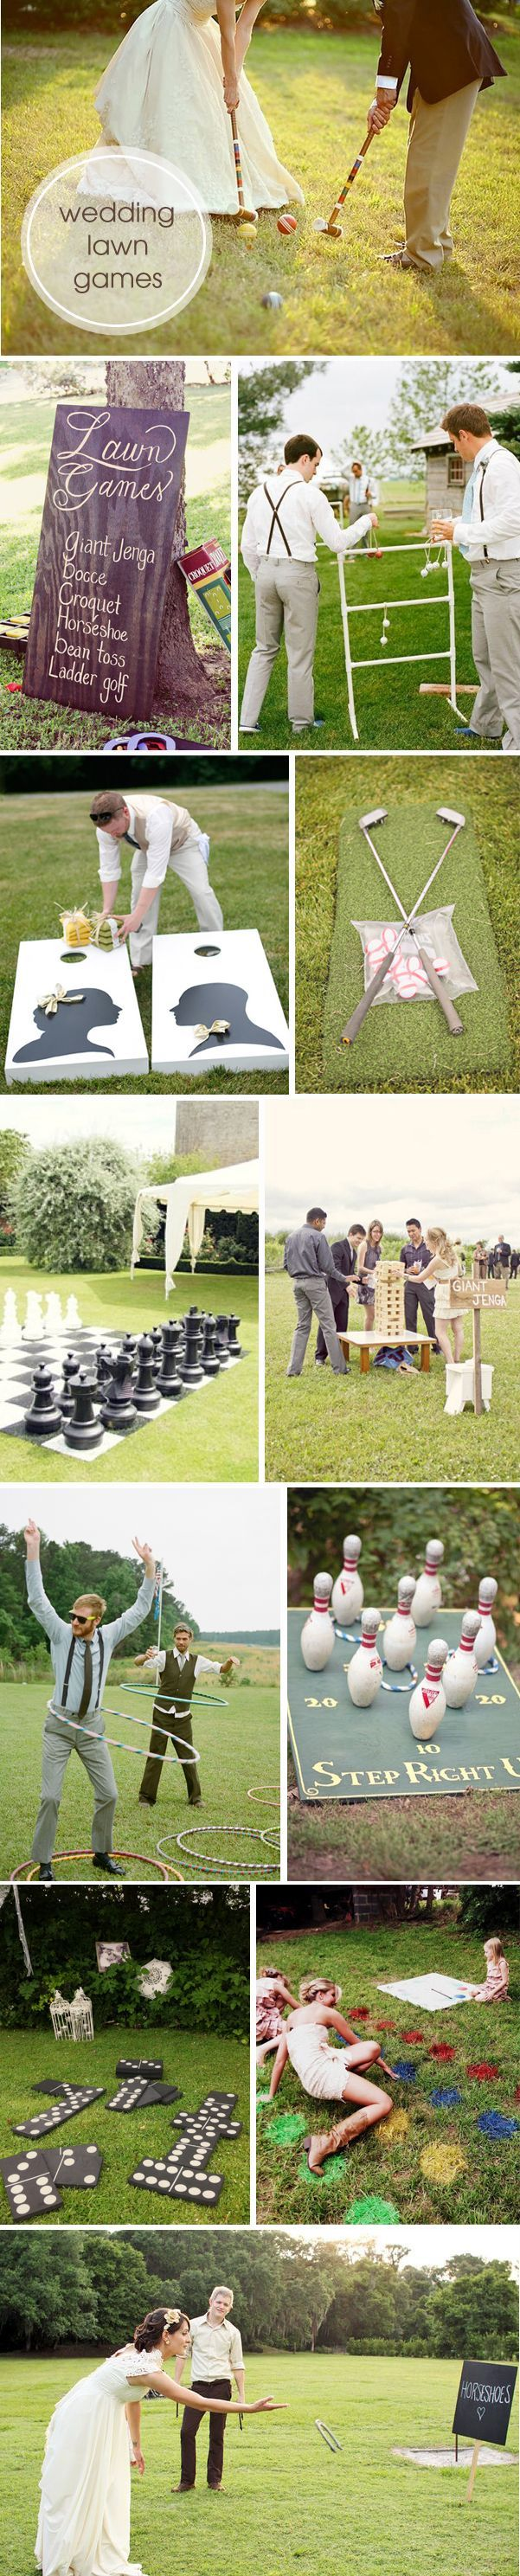 Too much down time at a wedding can be bad news. Your guests will never get bored with these lawn games!